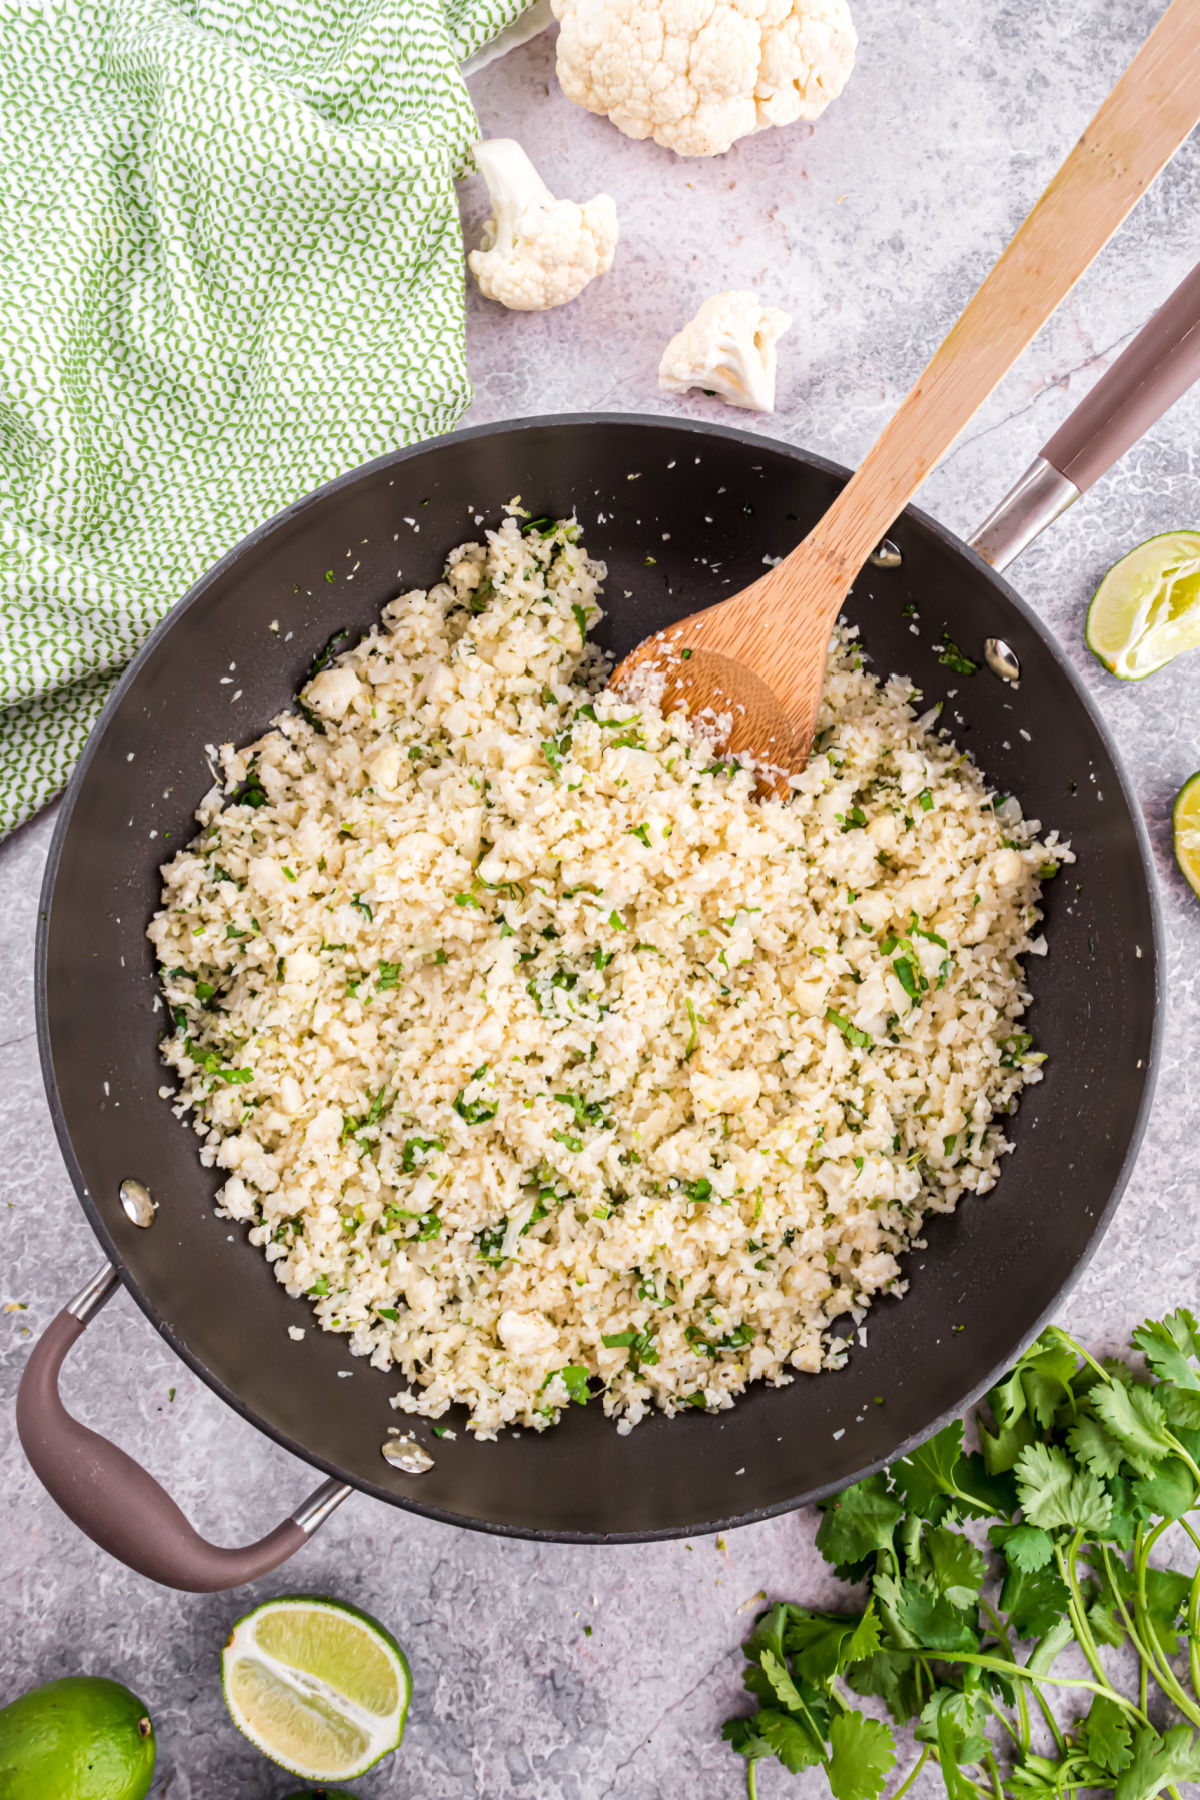 Skillet cooking cauliflower rice with cilantro and lime juice.